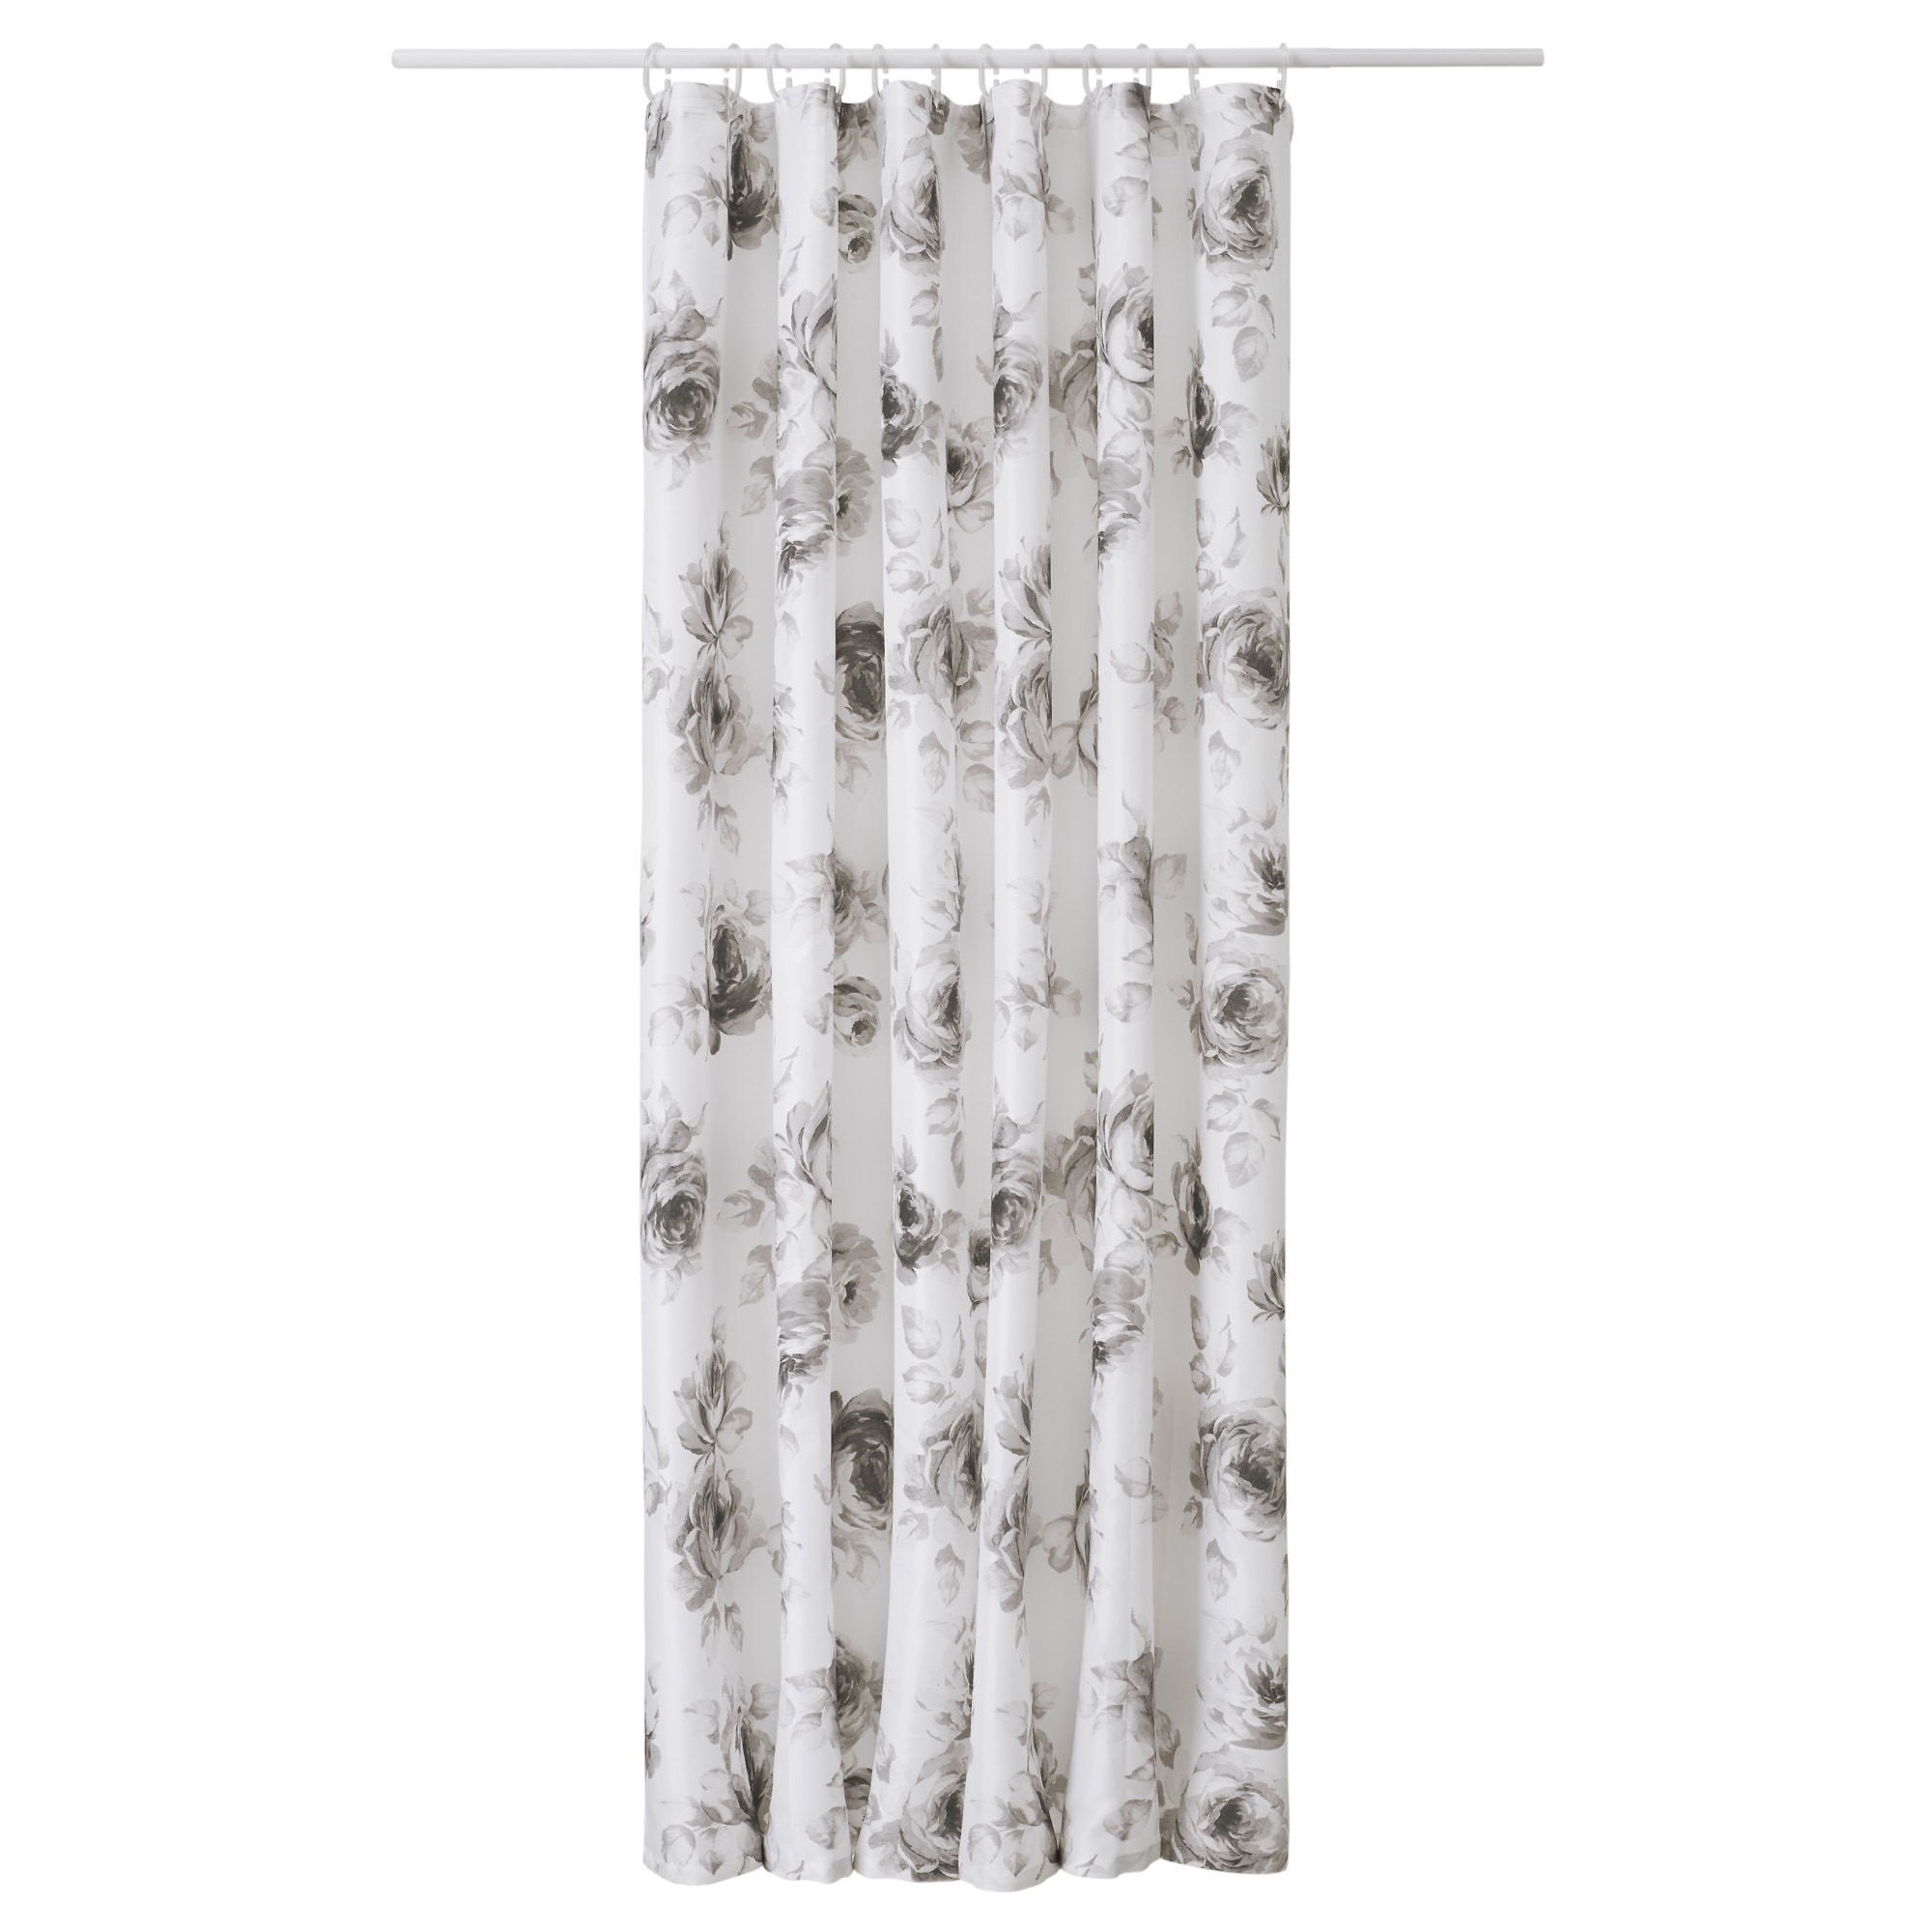 AGGERSUND Shower Curtain